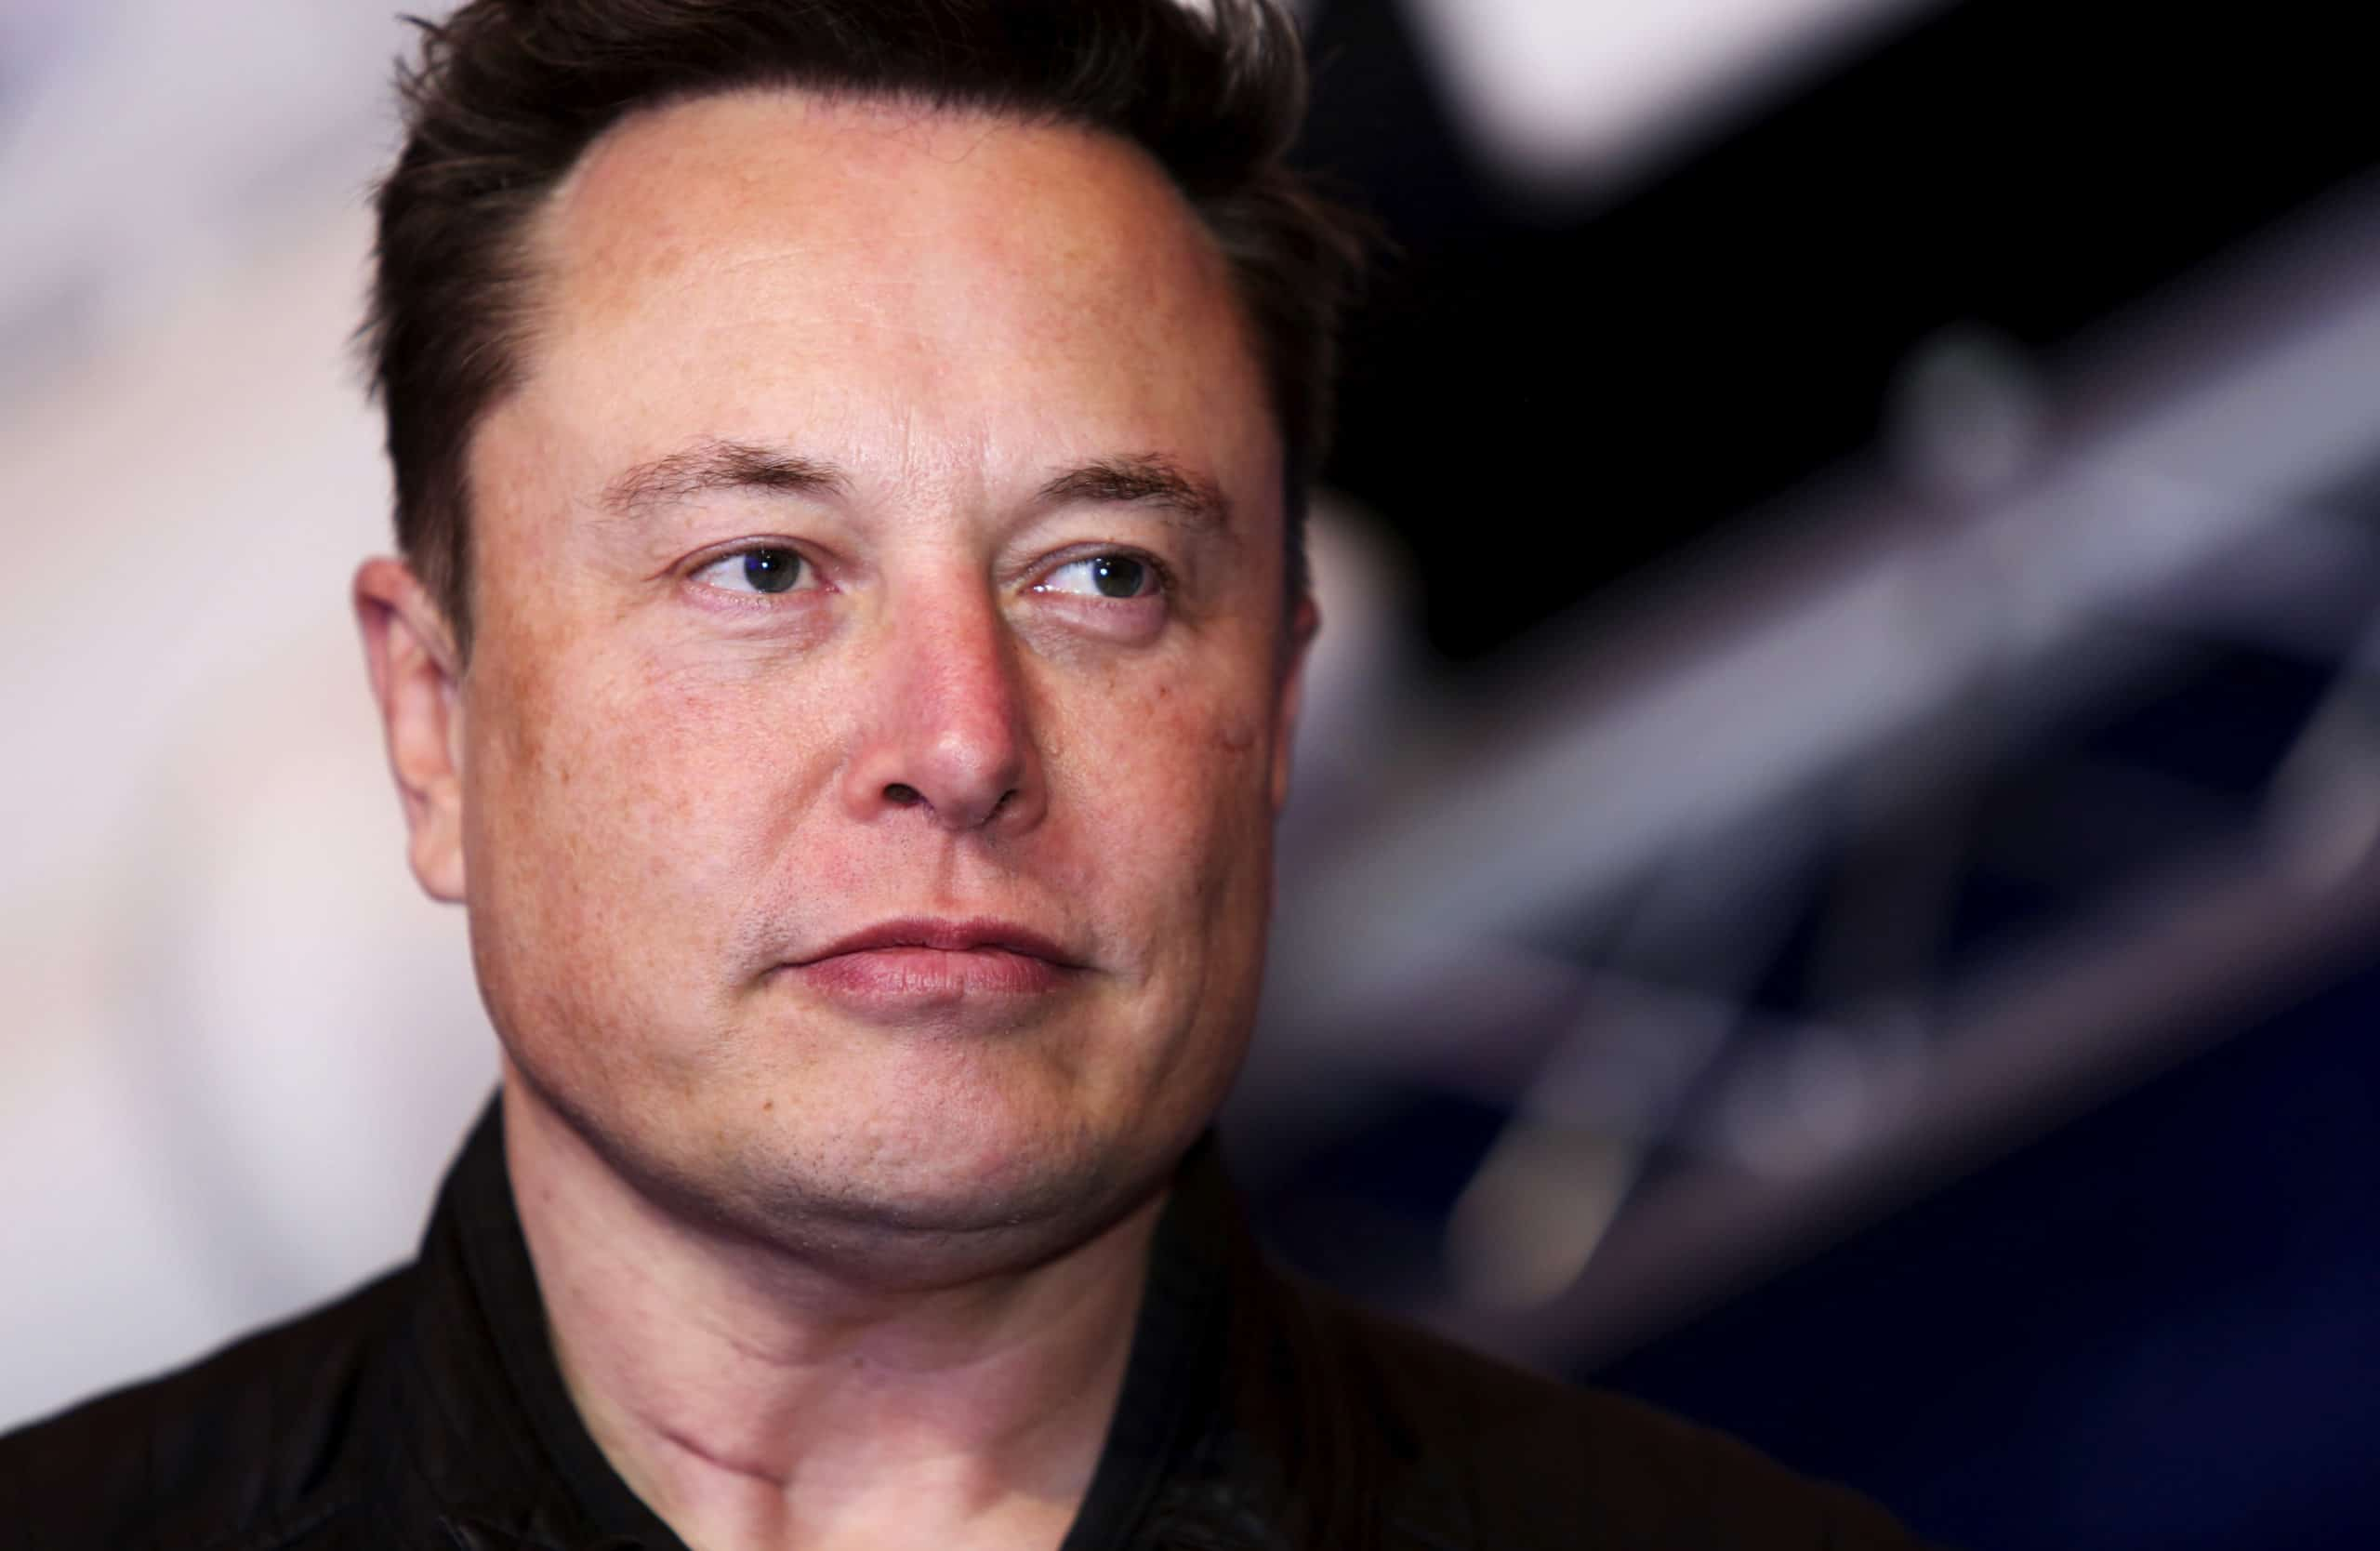 Billionaire Elon Musk Receives Axel Springer Award